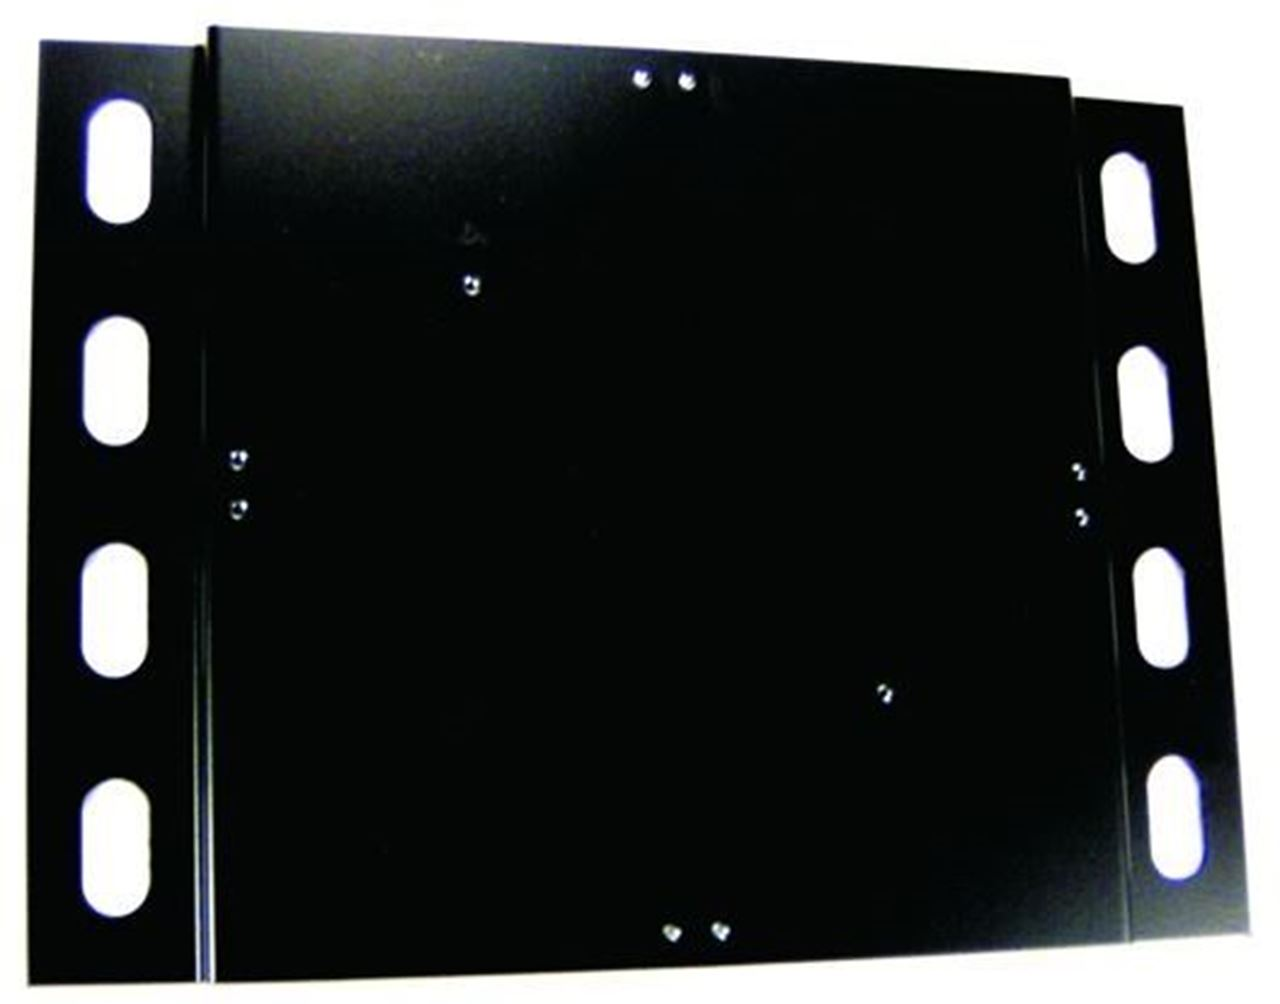 Bentel security 5000-006 - Flat Mounting Plate for 1 to 4 Prisms Armenia Vantag LLC